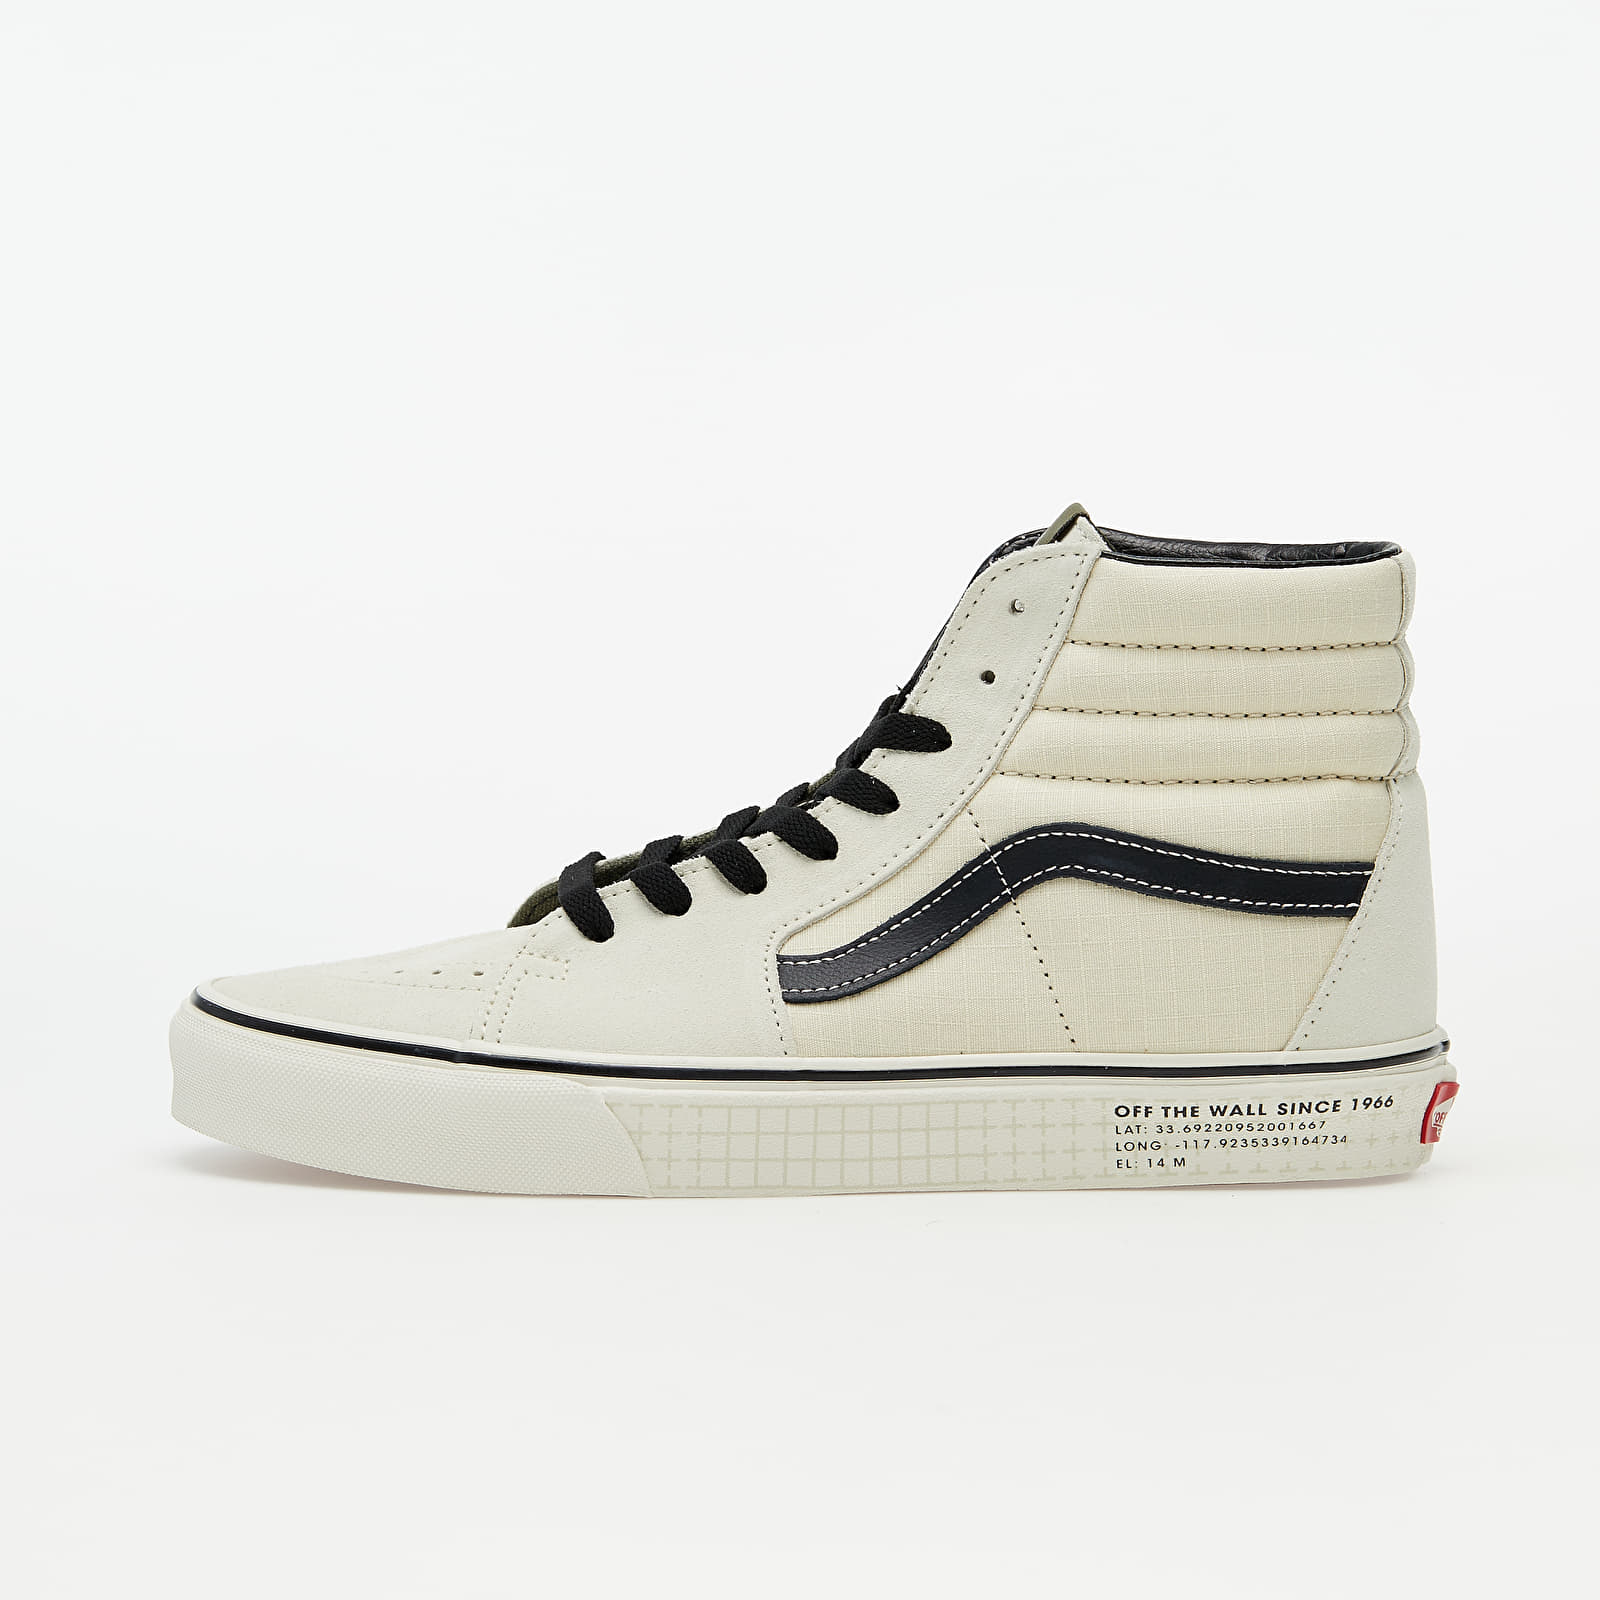 Vans Sk8-Hi (66 Supply) Antique White/ Black VN0A4BV622H1